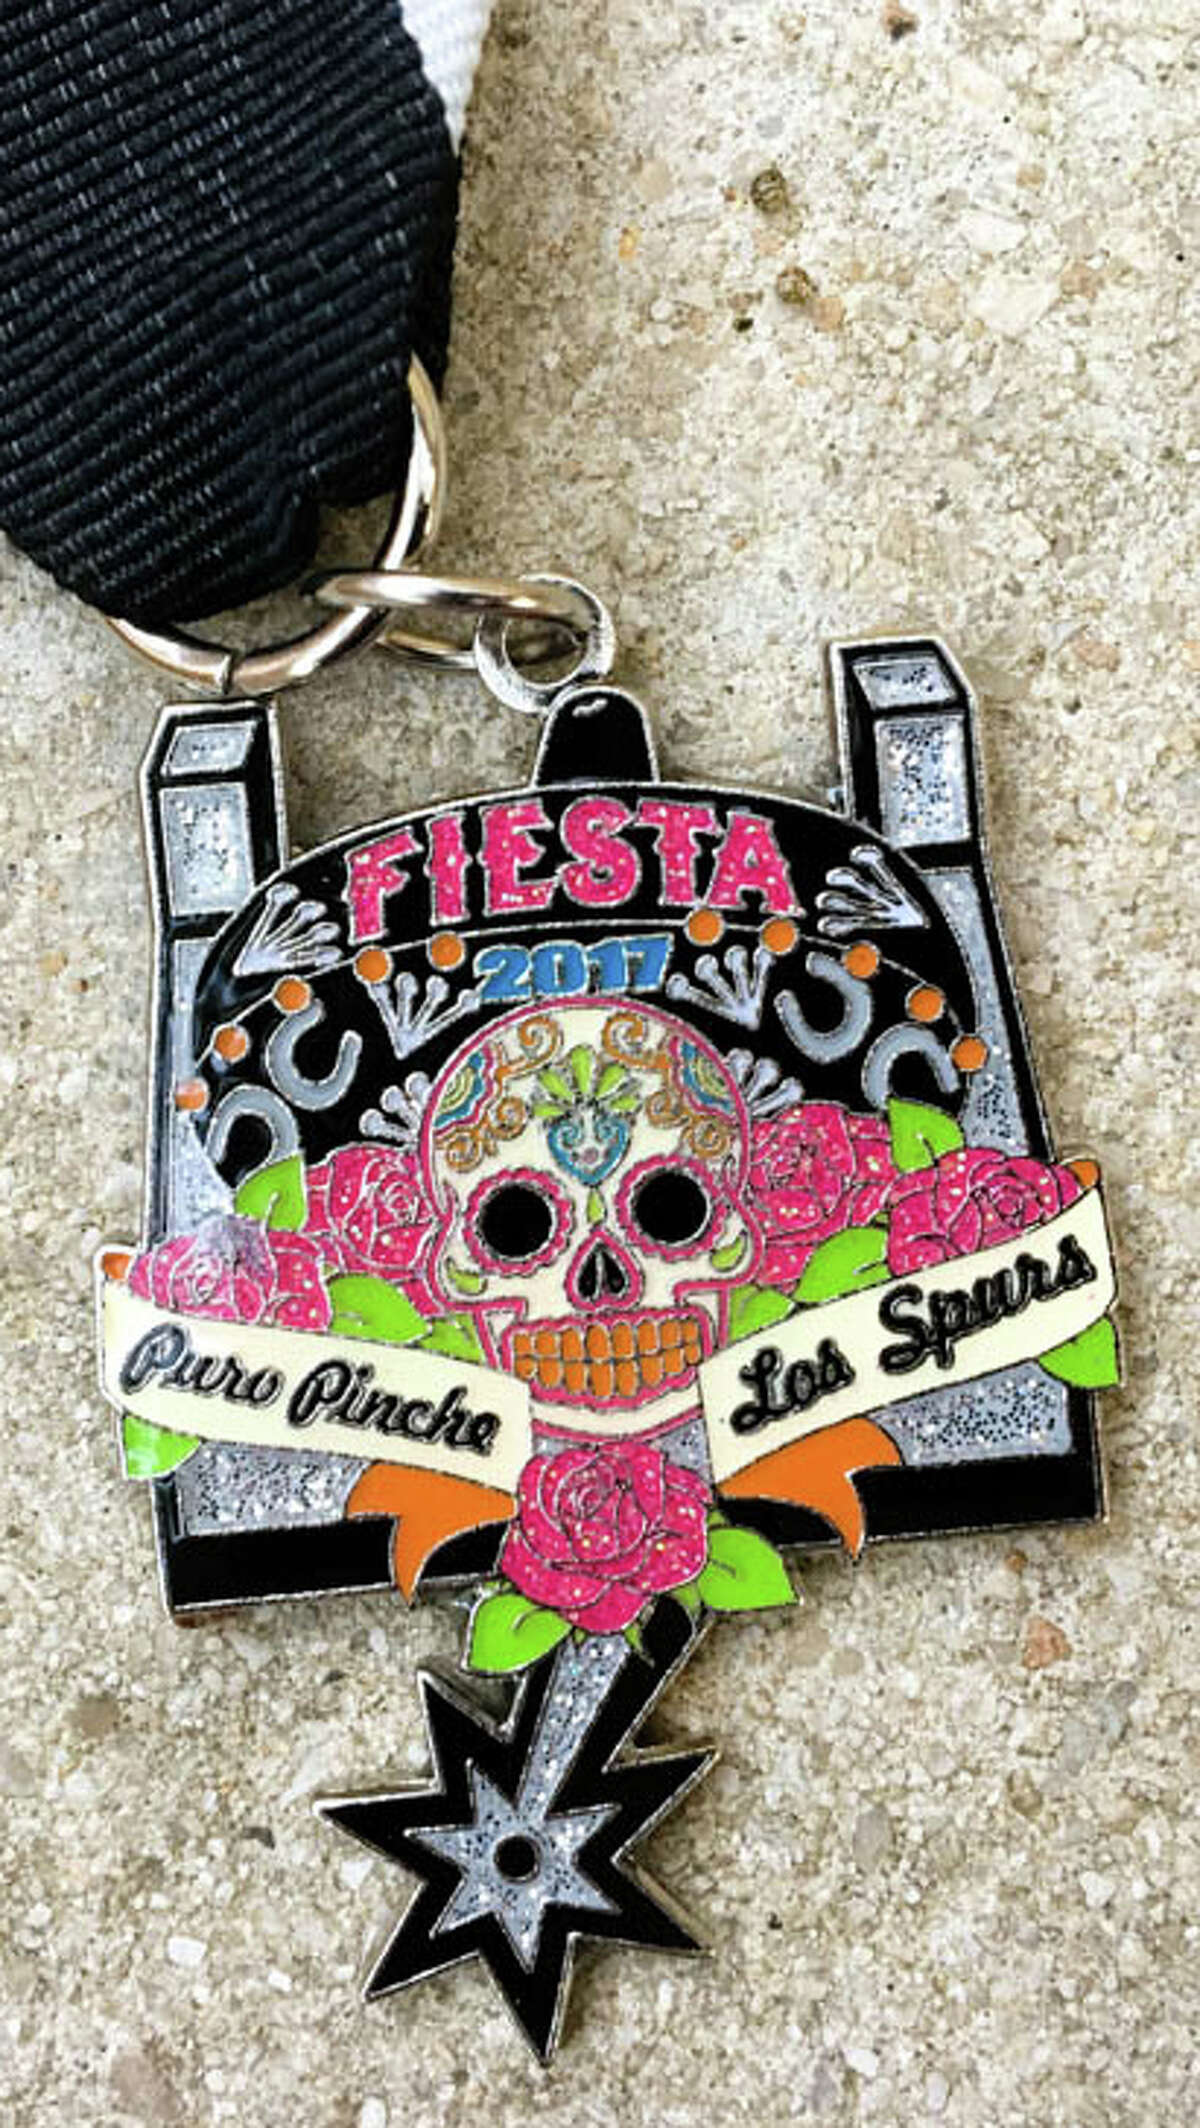 Puro Pinche Spurs by Audrey Haake: Personal medal: for those who love calaveras and Spurs